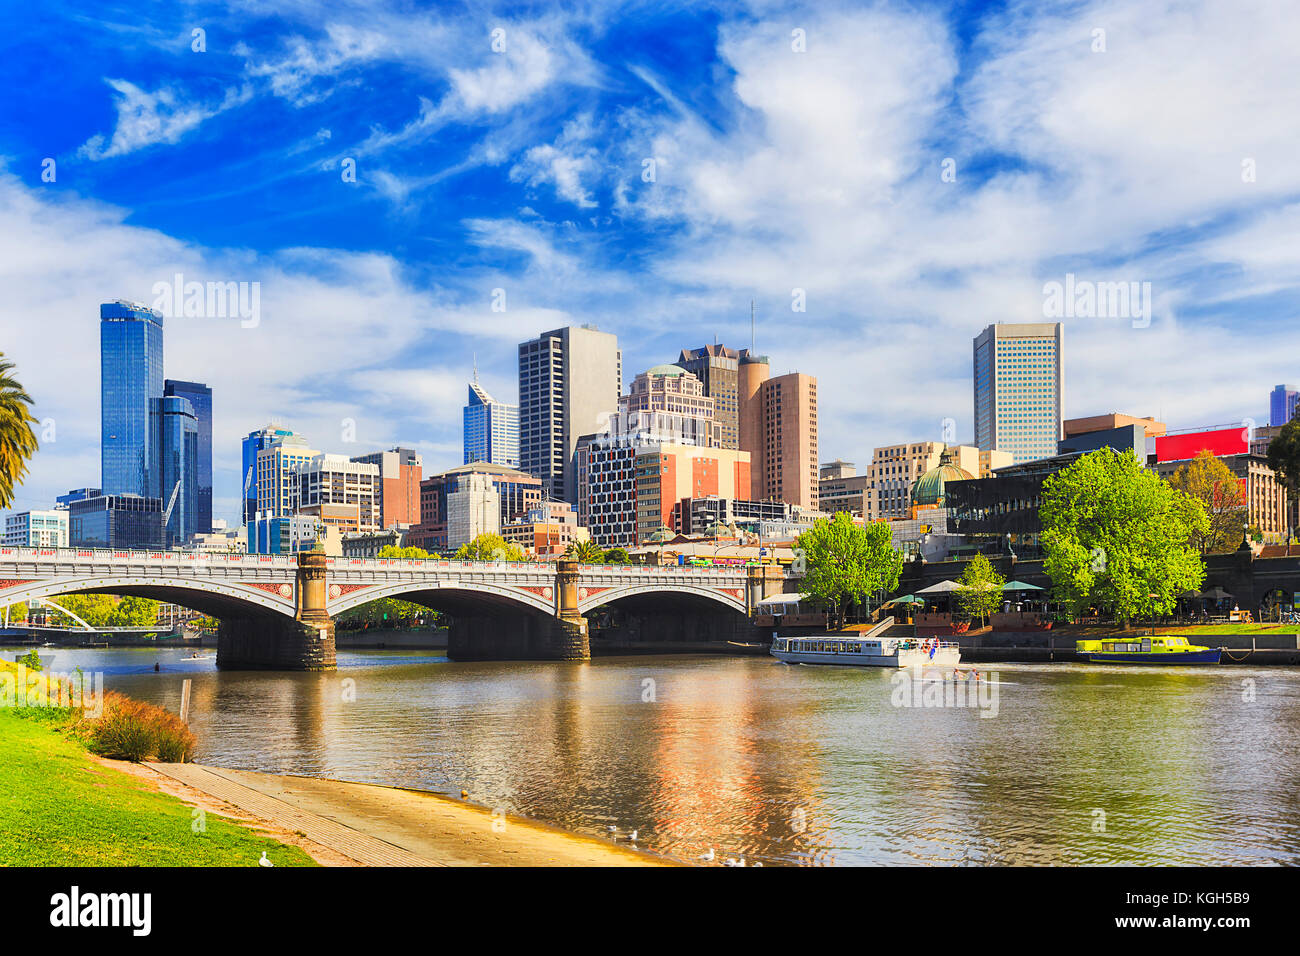 Princes bridge in Melbourne city across Yarra river on a sunny day in view of high-rise towers and modern urban architecture. Stock Photo